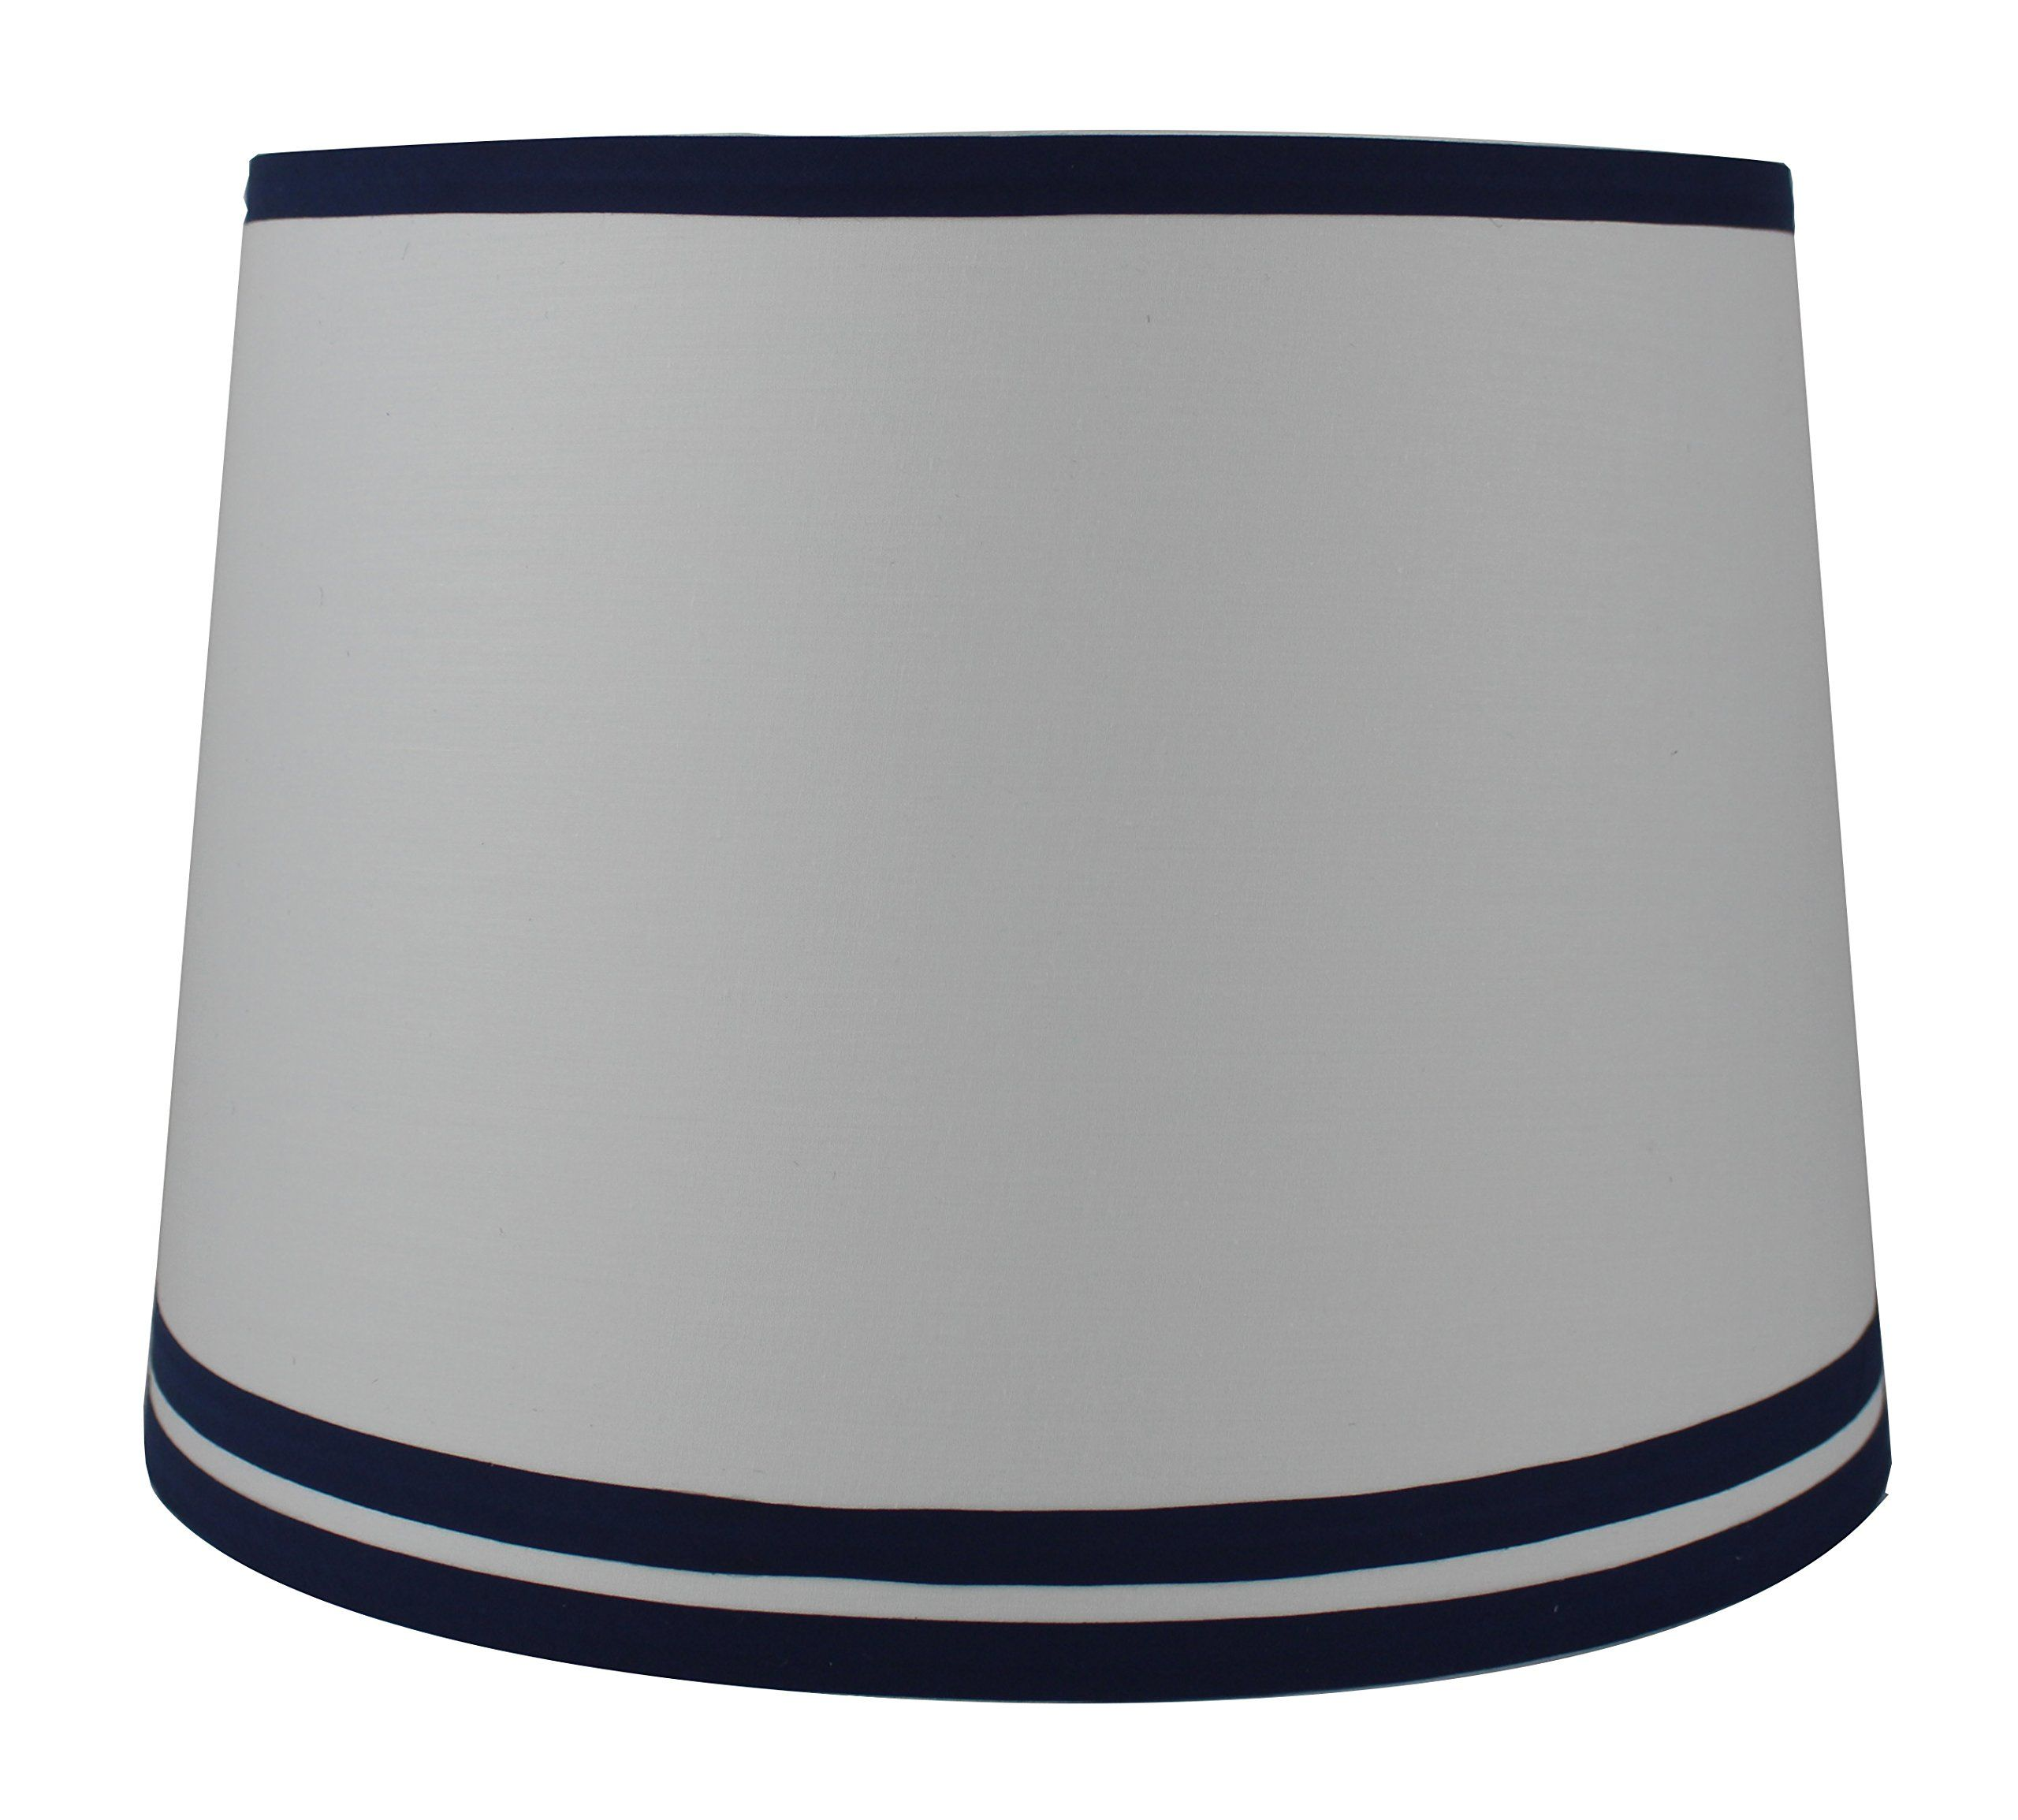 Urbanest White With Double Trim French Drum Lampshade 12inch By 14inch By 10inch Navy Blue Spider You Can Find More Details Drum Lampshade Lamp Shades Lamp